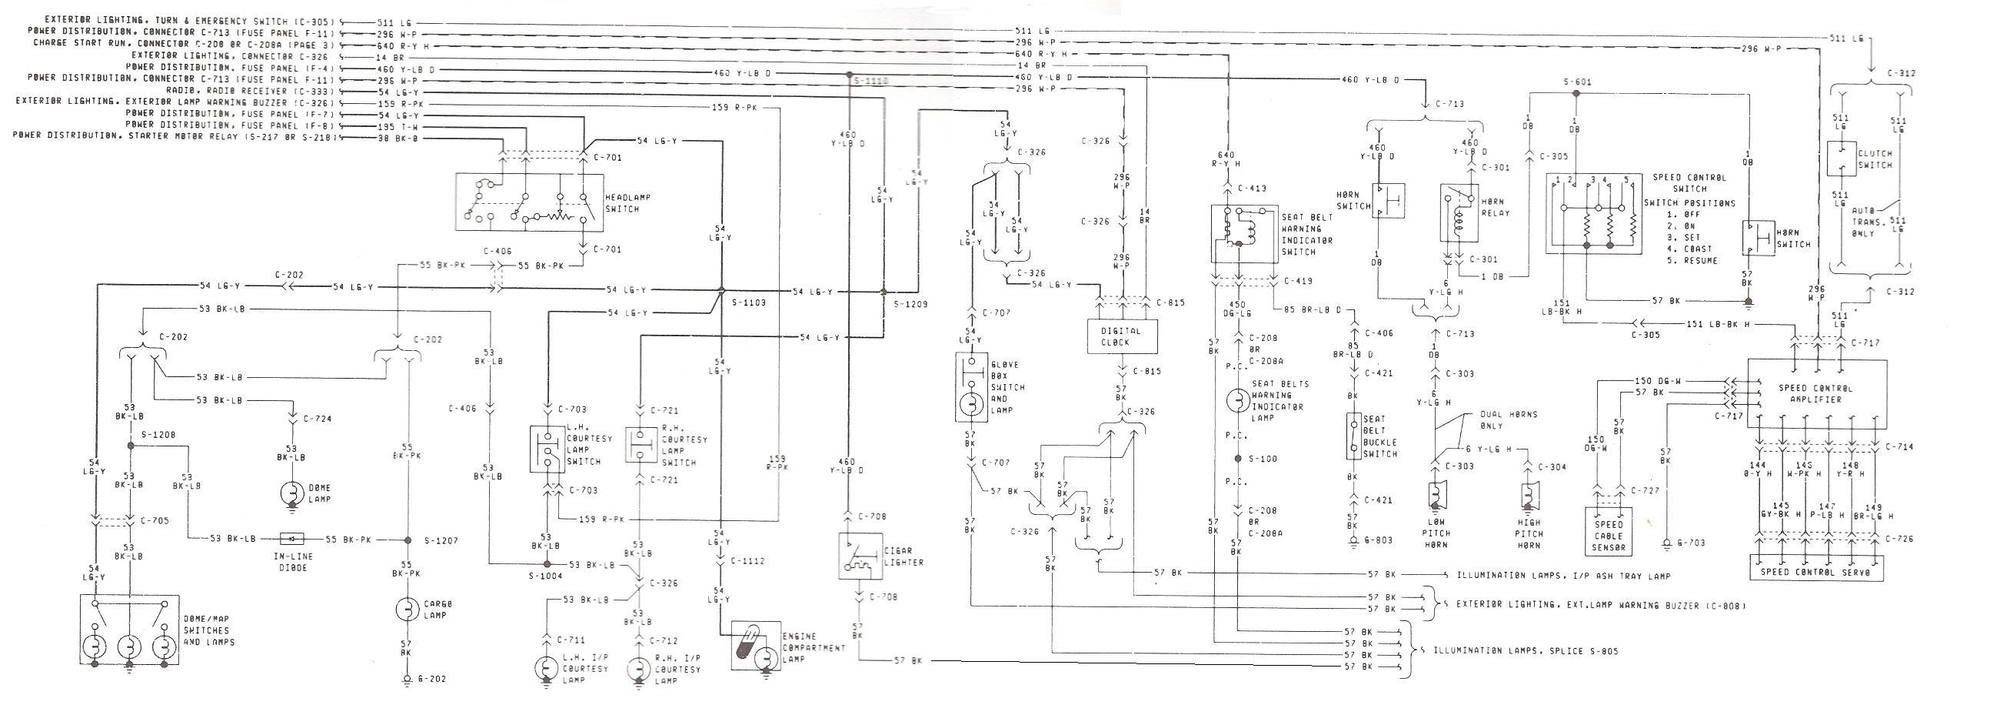 Wiring Diagram: 28 1986 Ford F150 Radio Wiring Diagram